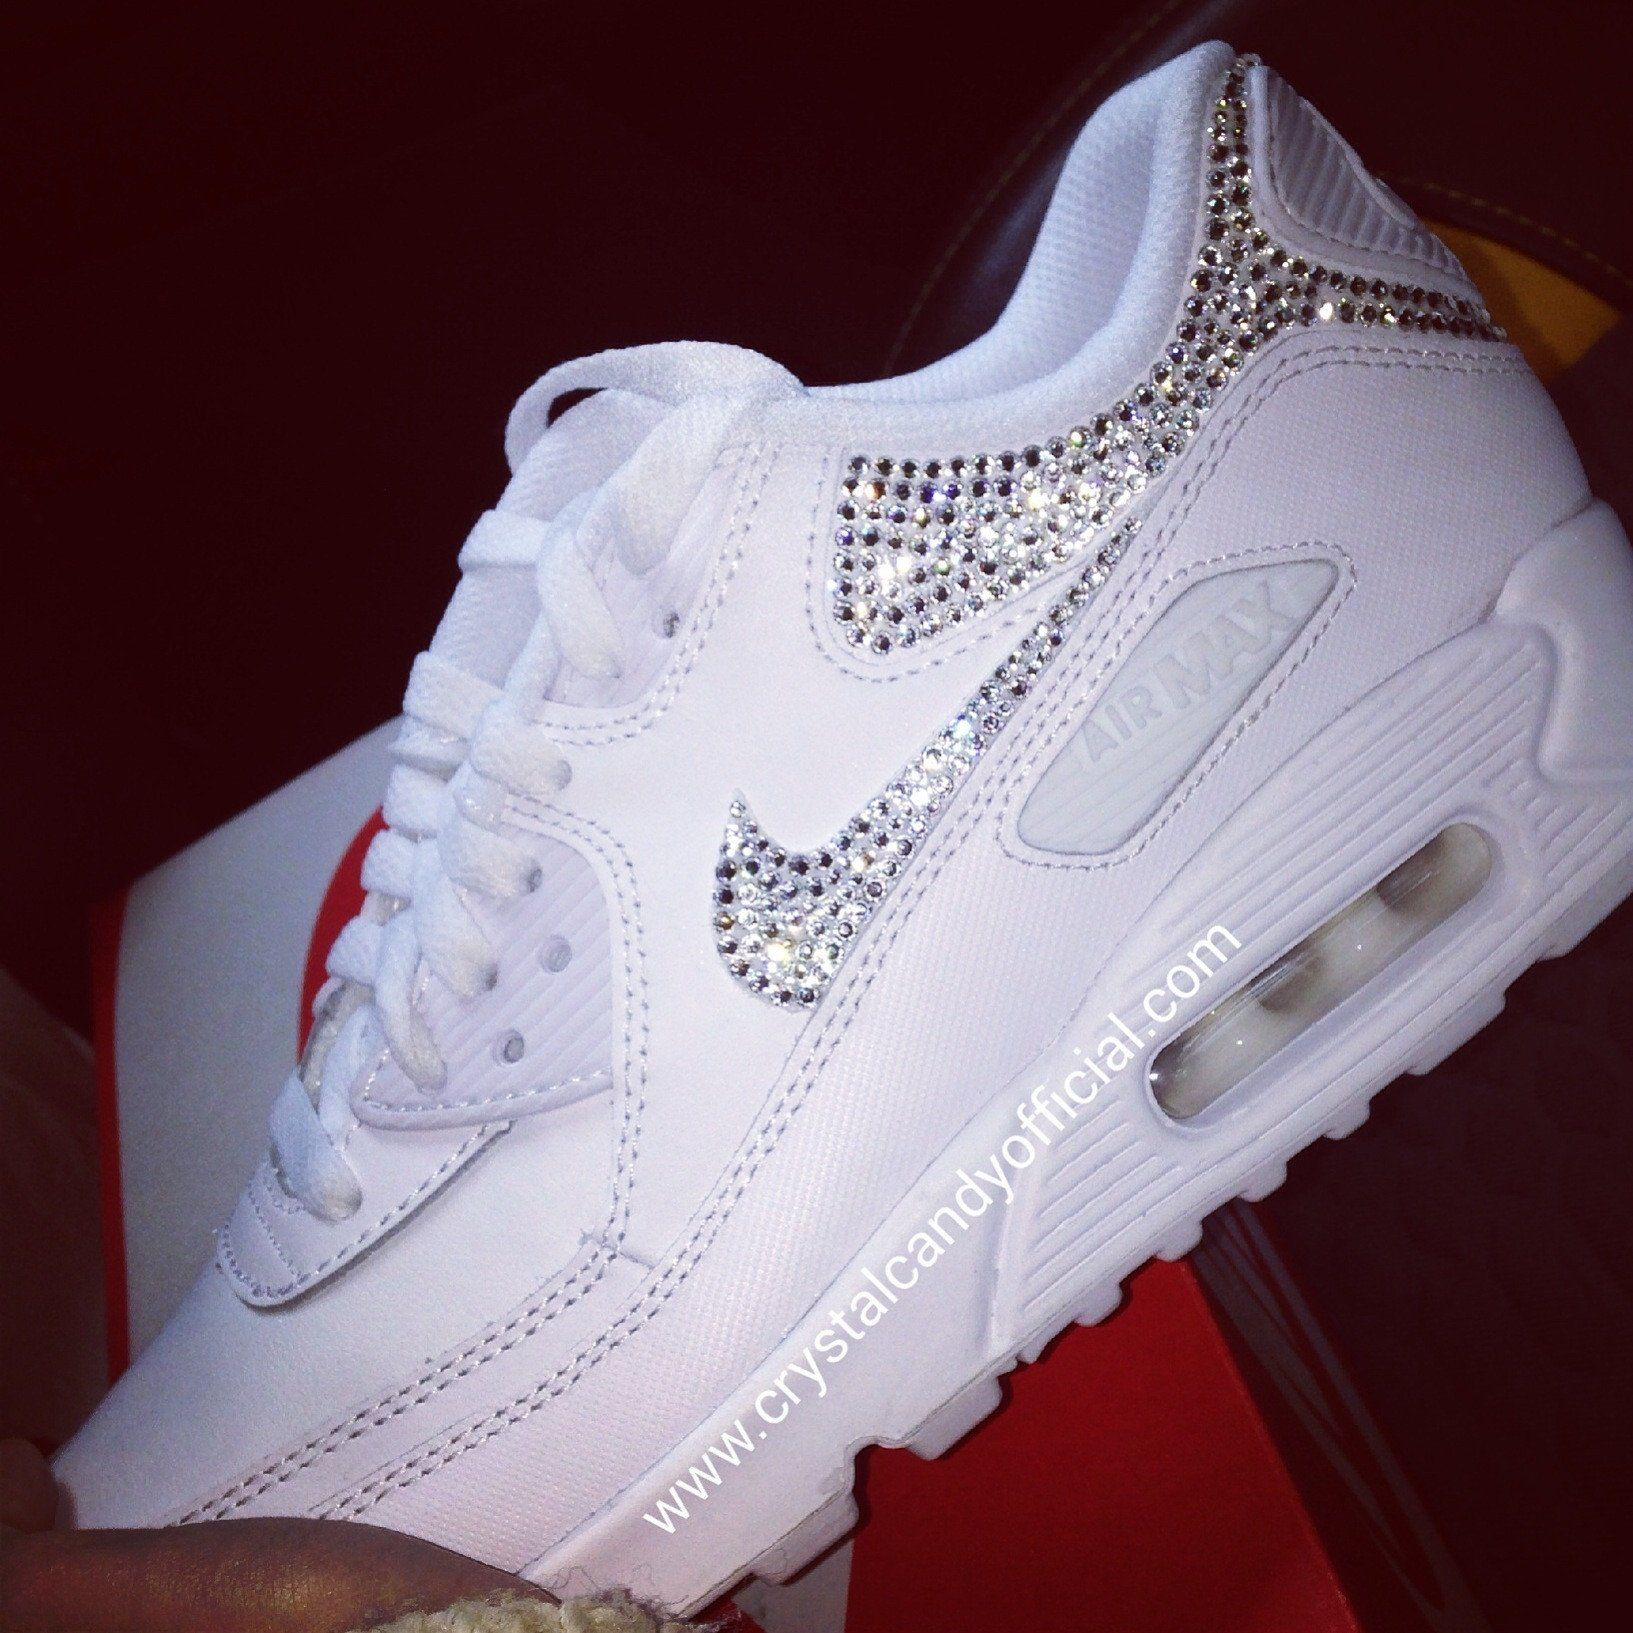 Nike Air Max Thea Weiß Glitzer | ?,?? ???? ?? ??????? in